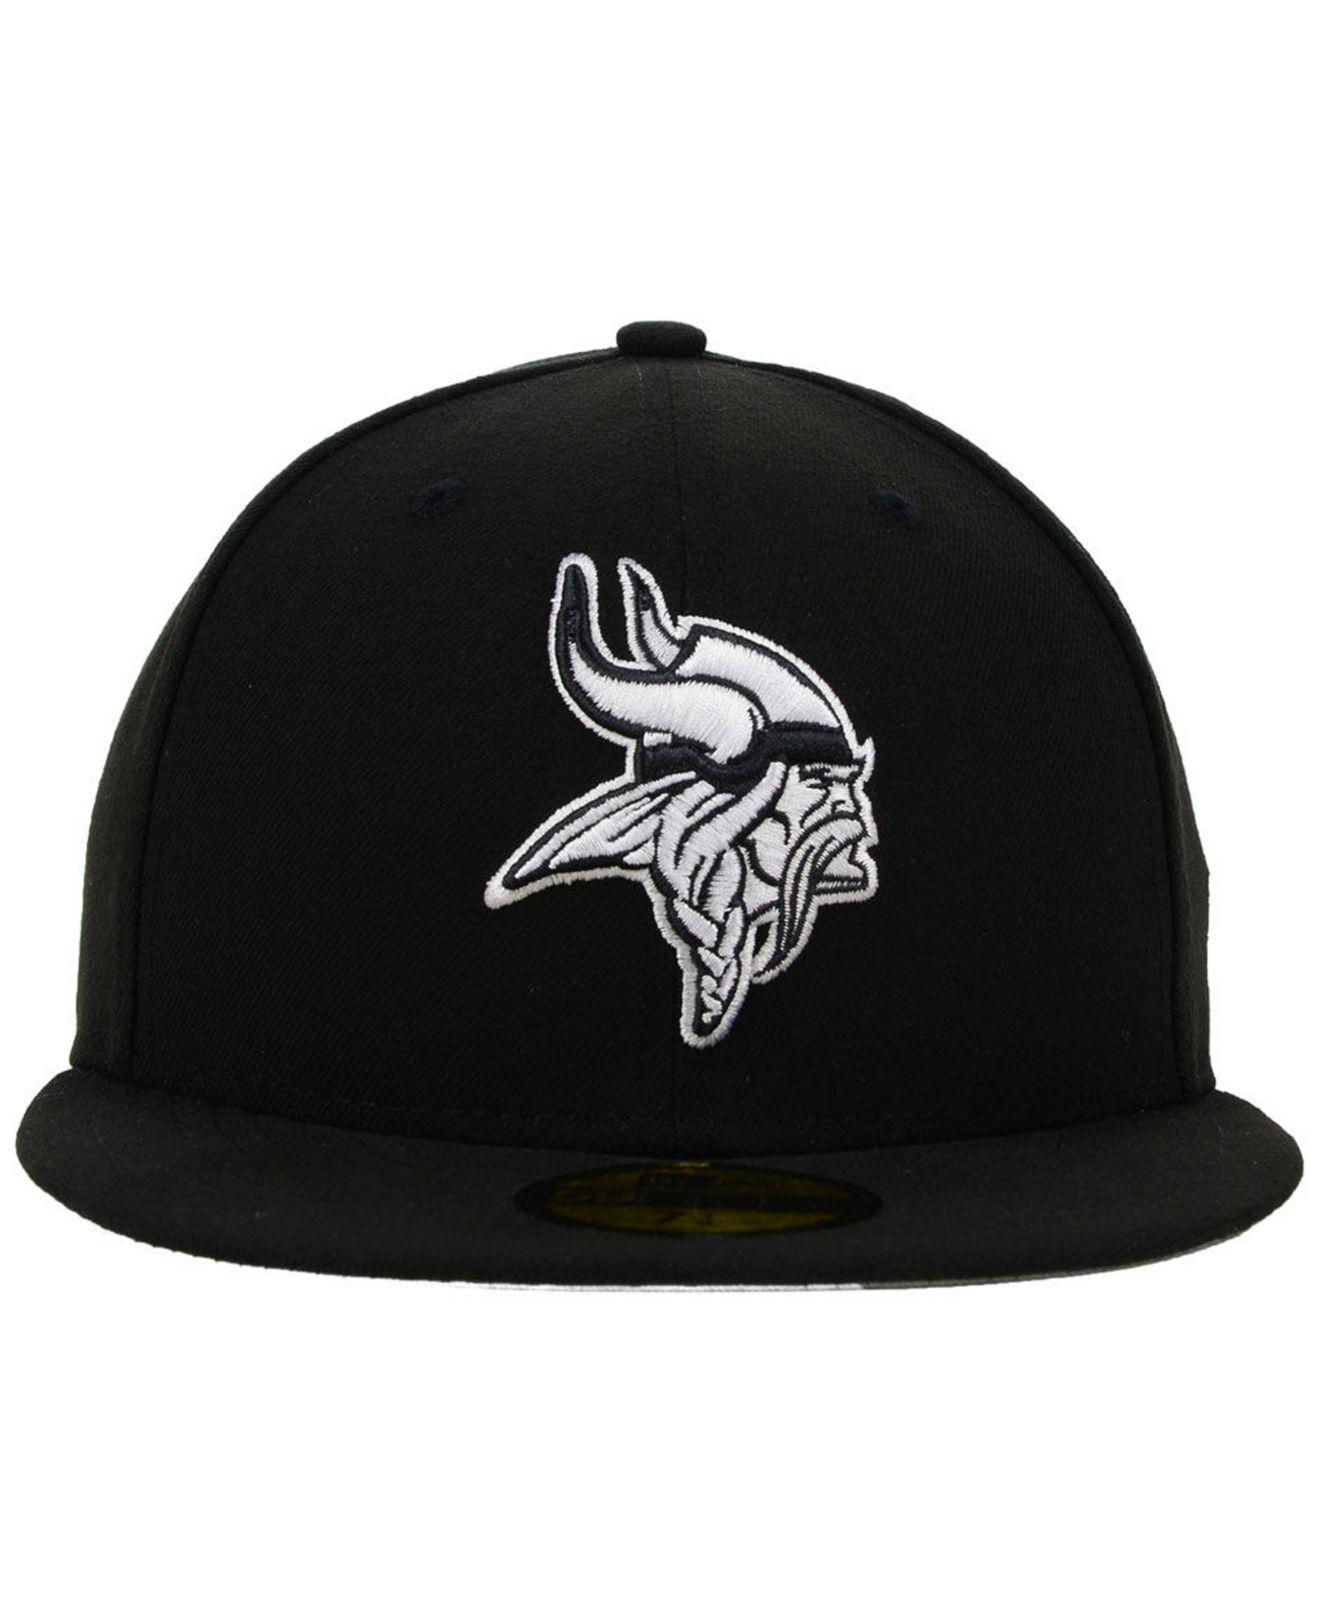 best website f3aa7 35570 ... snapback cap graphite new fa9d6 9ced4  clearance lyst ktz minnesota  vikings black and white 59fifty fitted cap in black for men c8465